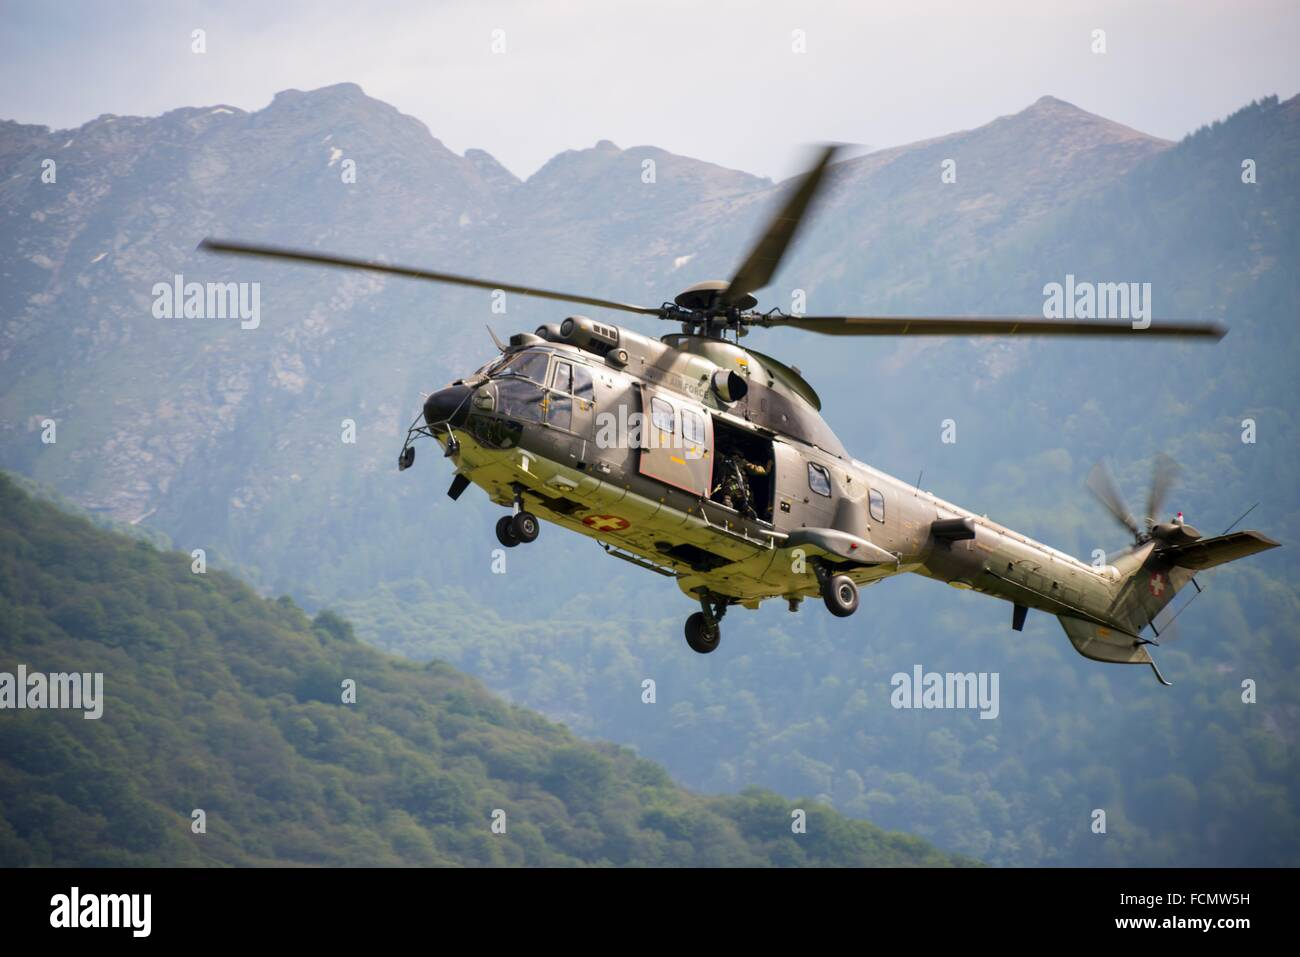 Military Helicopter flying and Swiss Alps in Ticino, Switzerland. - Stock Image